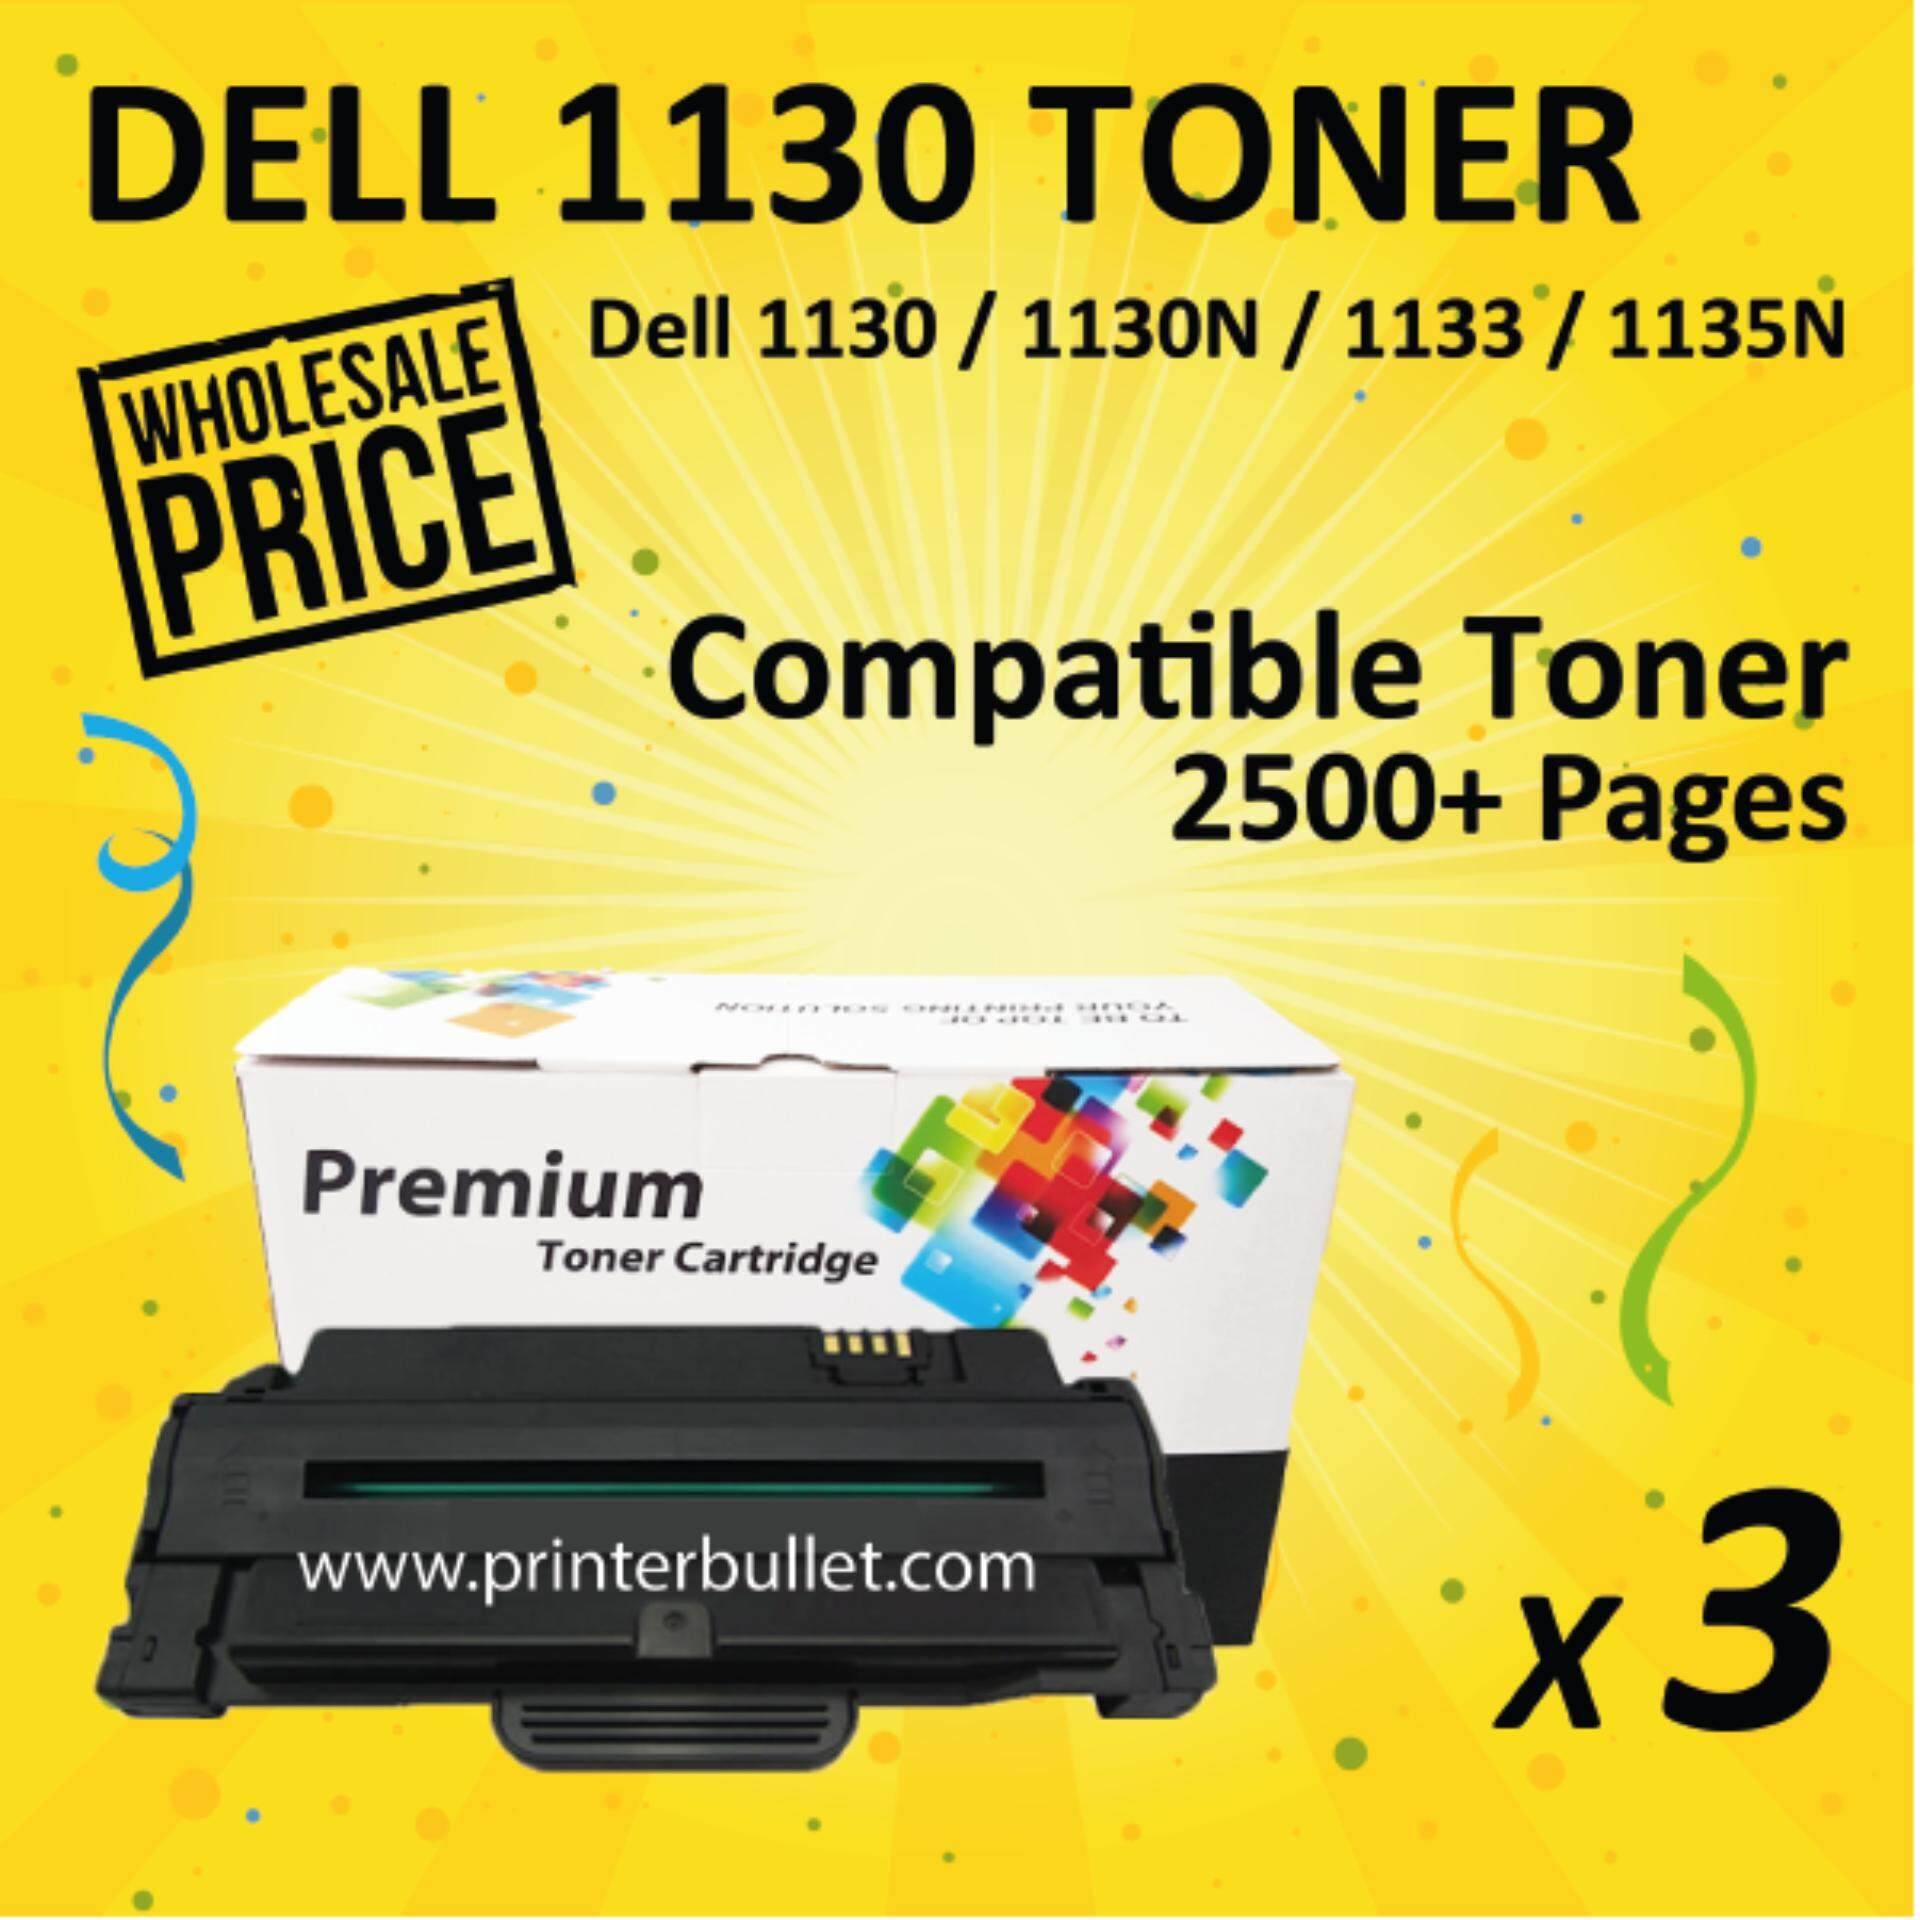 3 unit Dell 1130 / 1130N / 1133 / 1135 / 1135N Compatible Laser Toner Cartridge